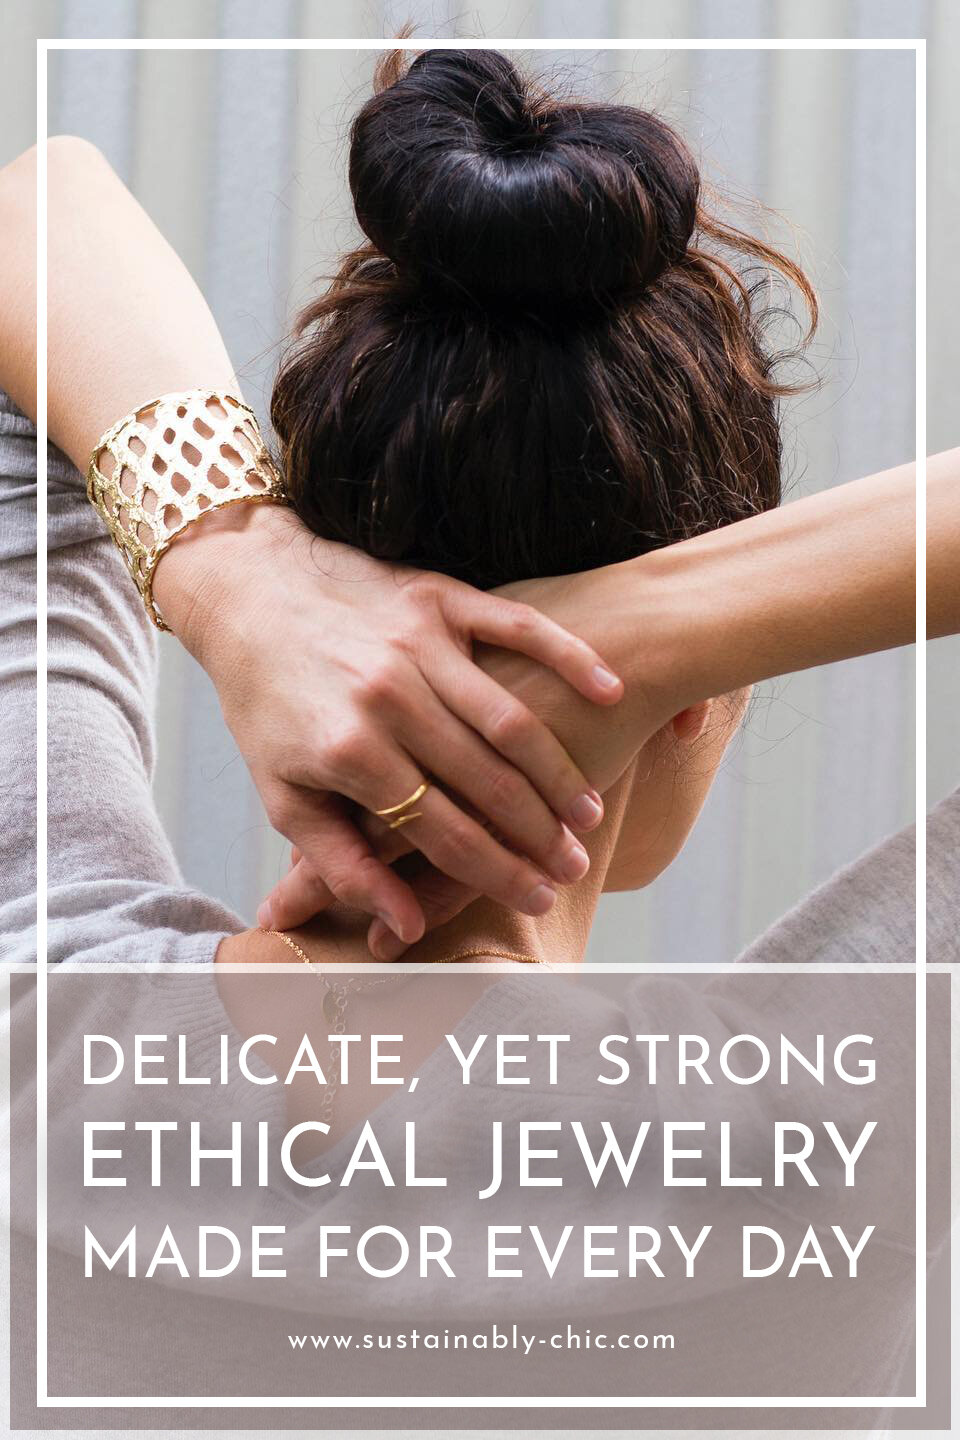 laura-elizabeth-jewelry-ethical.jpg